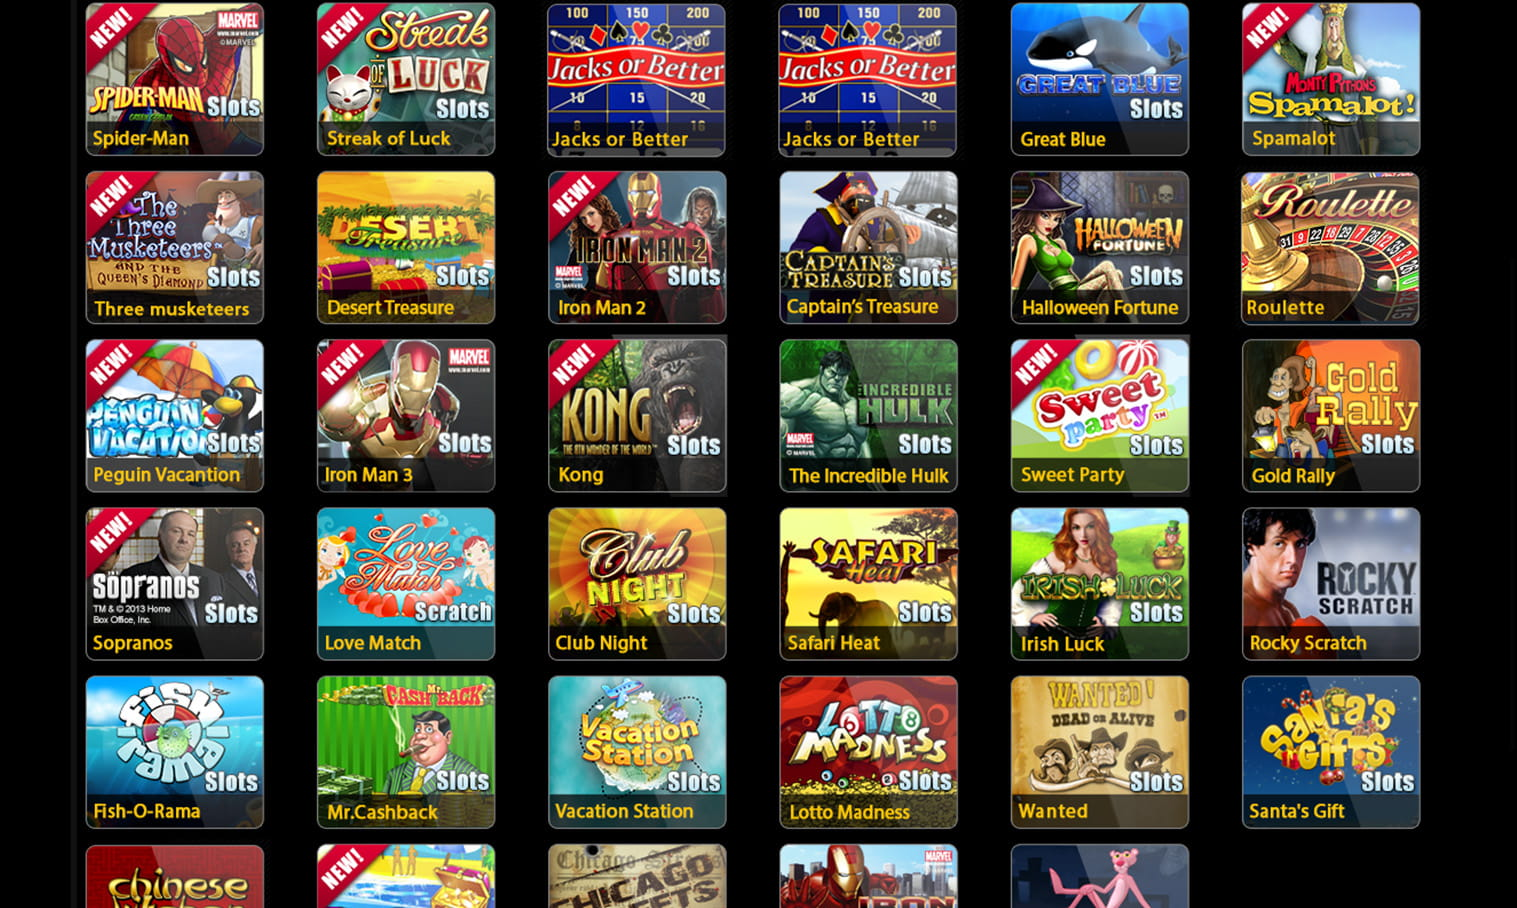 2005 casino gambling internet january period summary